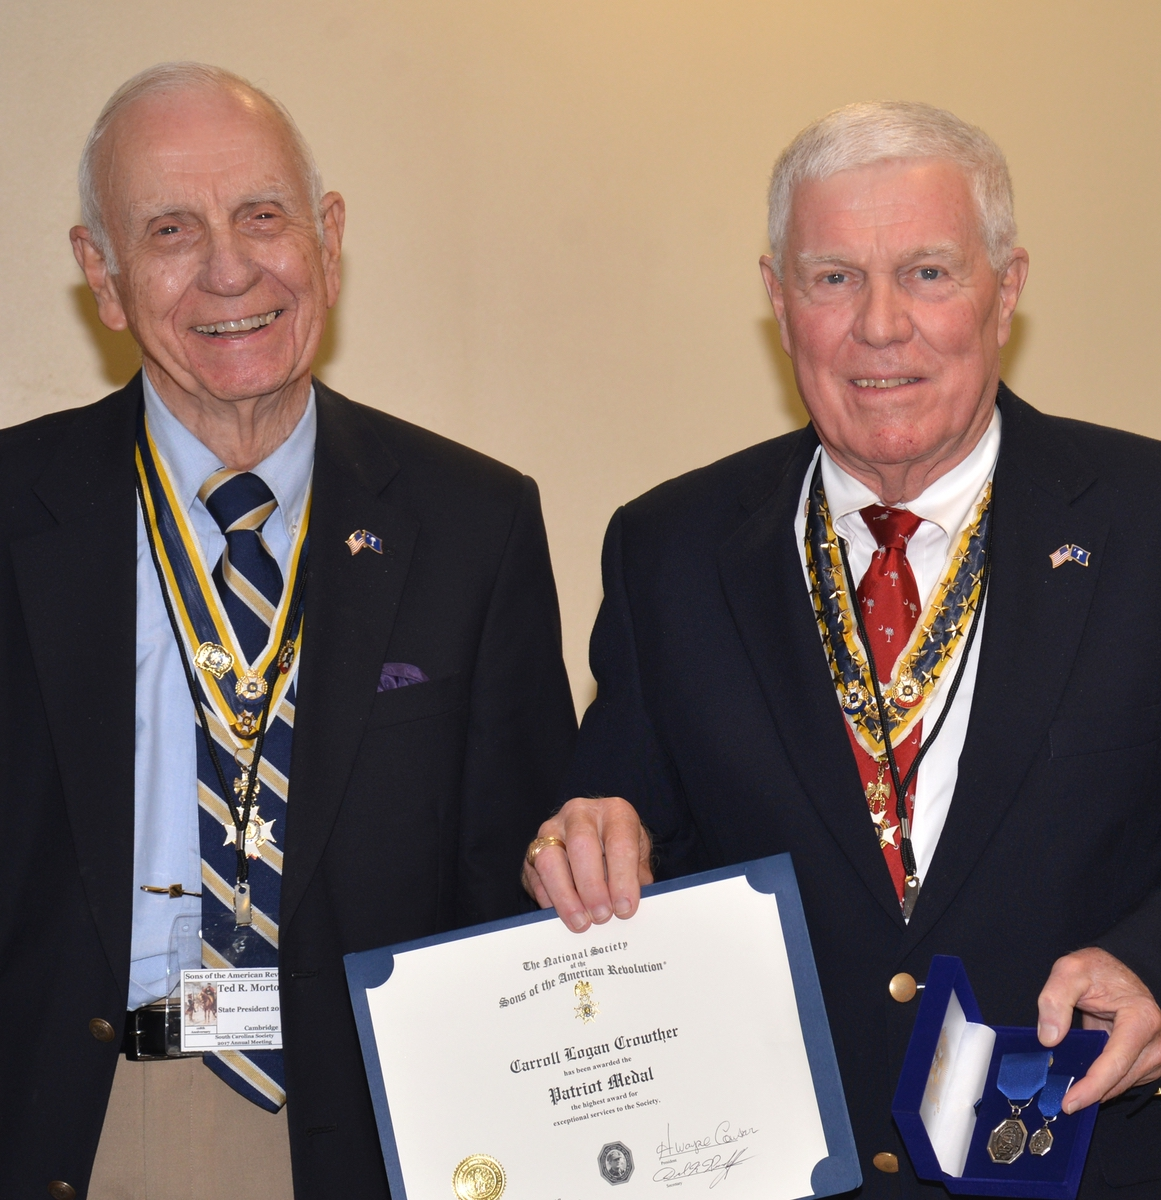 Carroll Crowther, right, holds his Patriot Medal Award. Standing with him is past SC Society President Ted Morton.